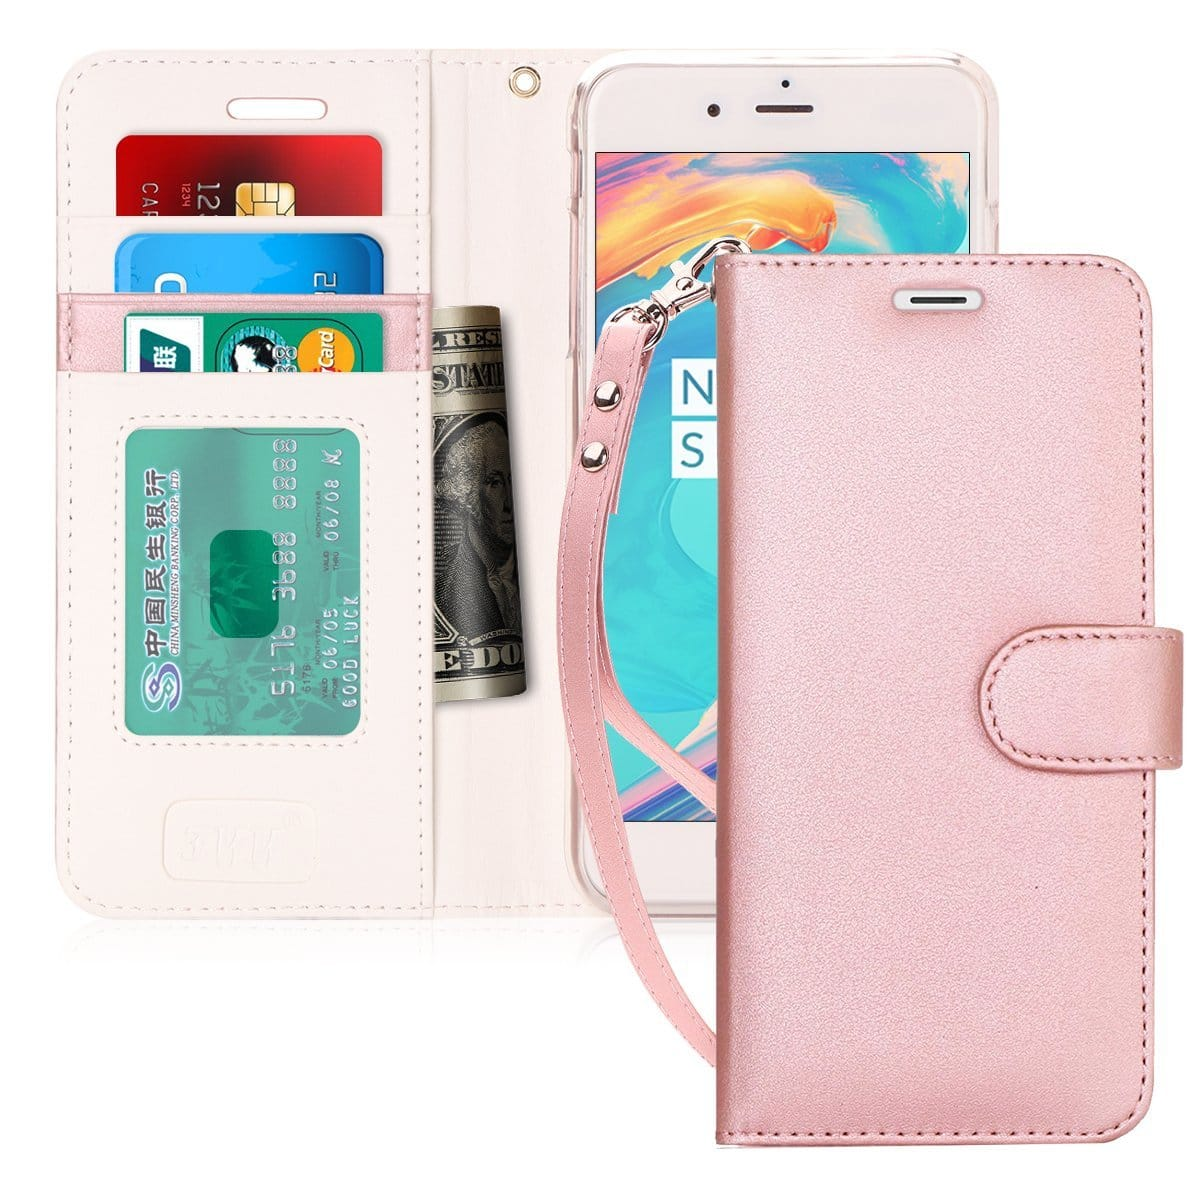 finest selection 22212 67471 iPhone 7/8 Plus Wallet Case (Rose Gold) $3.6 @Amazon - Slickdeals.net